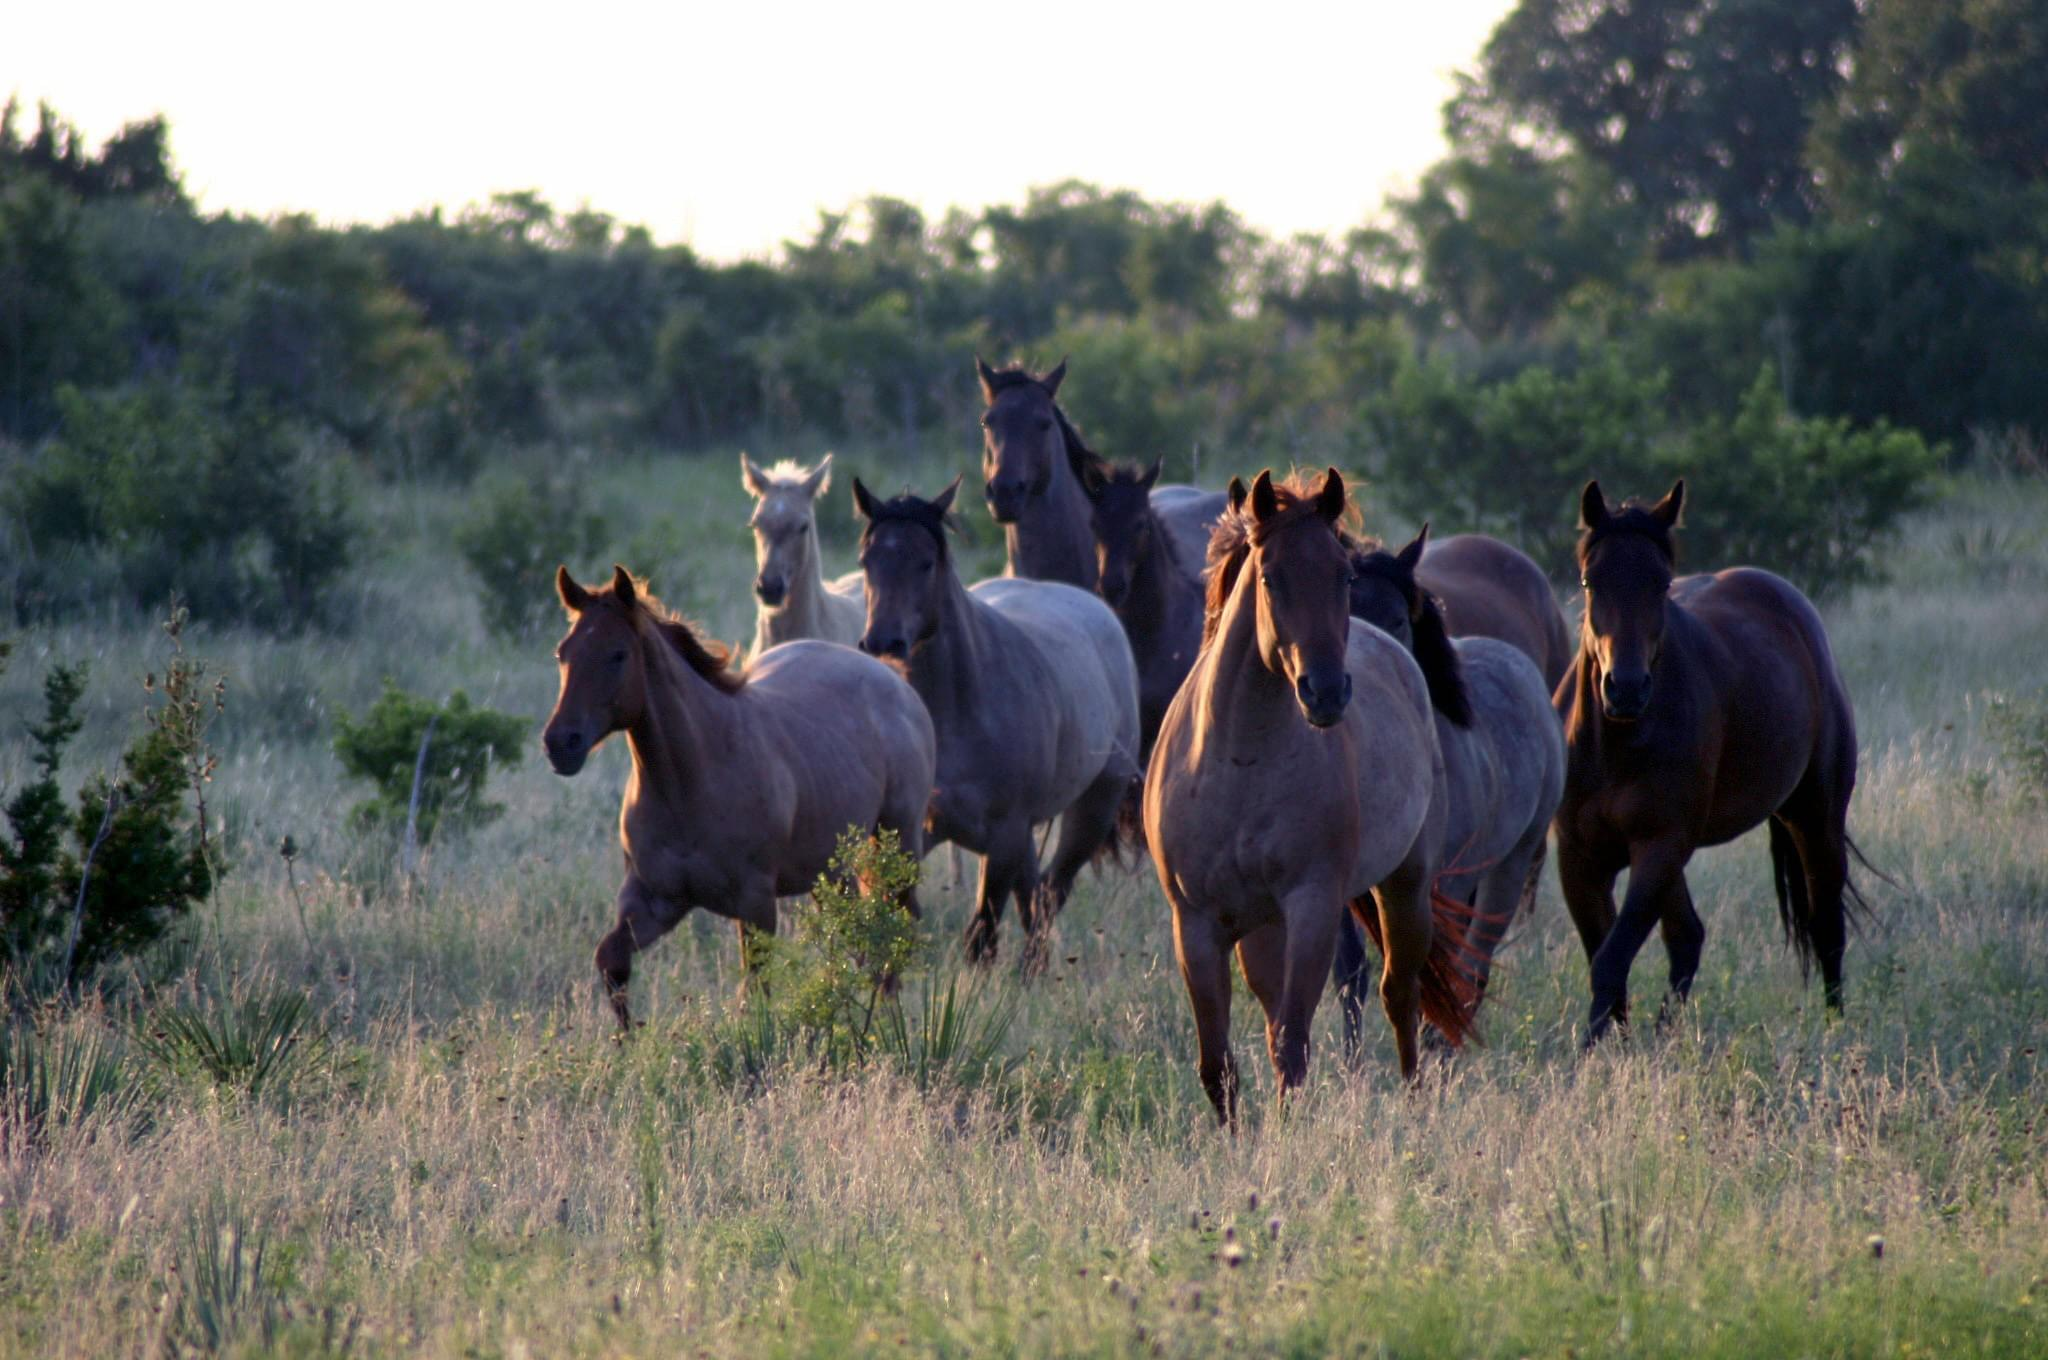 roan horse mare herd in pasture (Credit: Baru Forell)